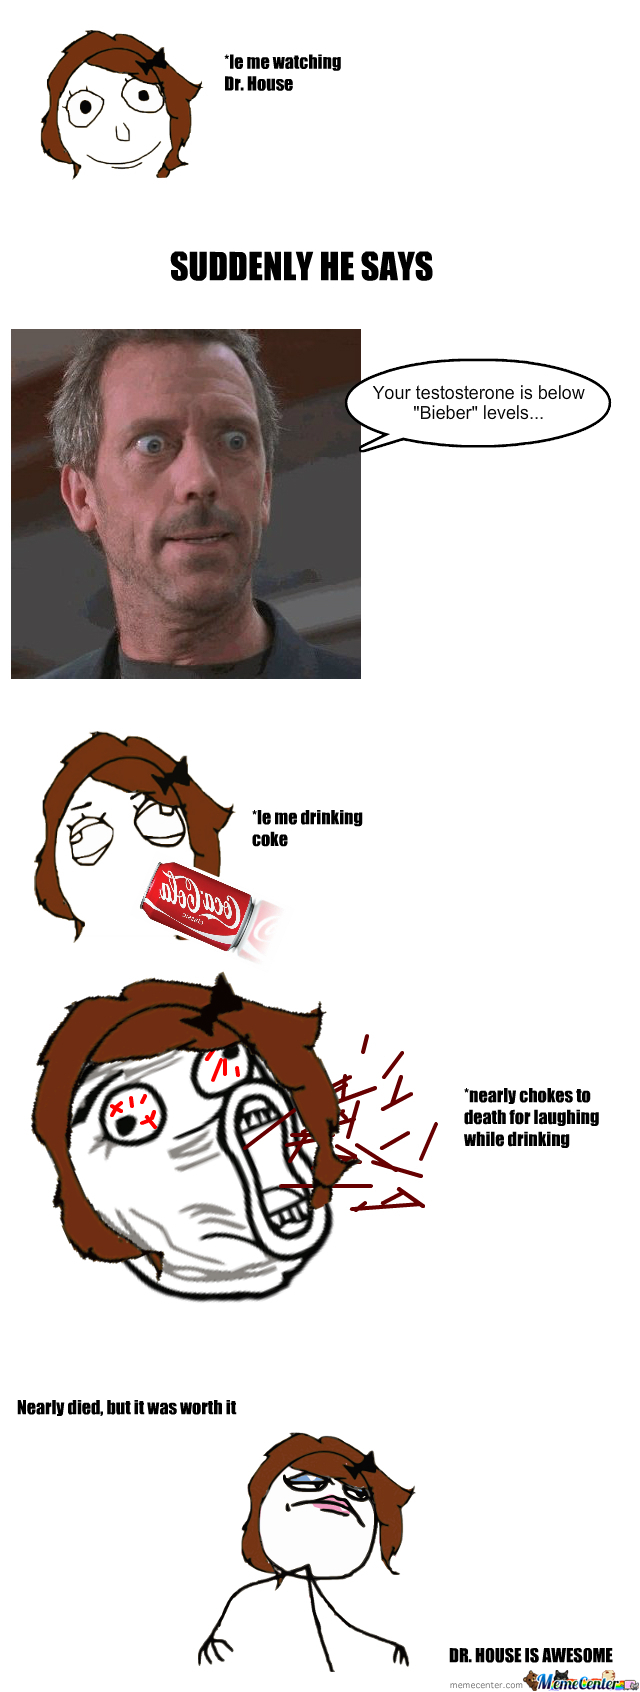 Dr. House Is My Hero